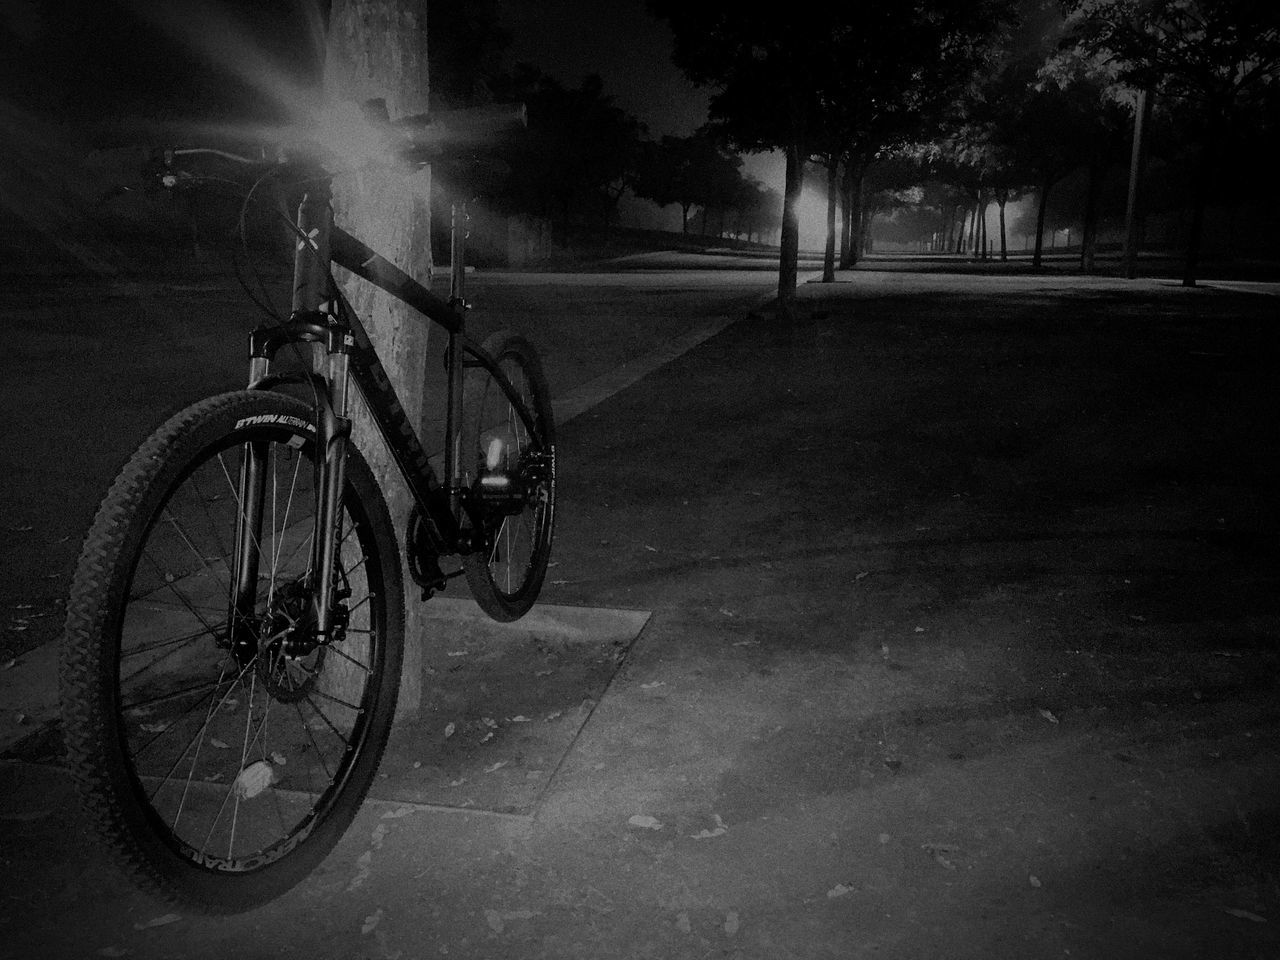 Partner in crime Badalona Barcelona Bicycle Bici CyclingUnites Blackandwhite Neblina Noche